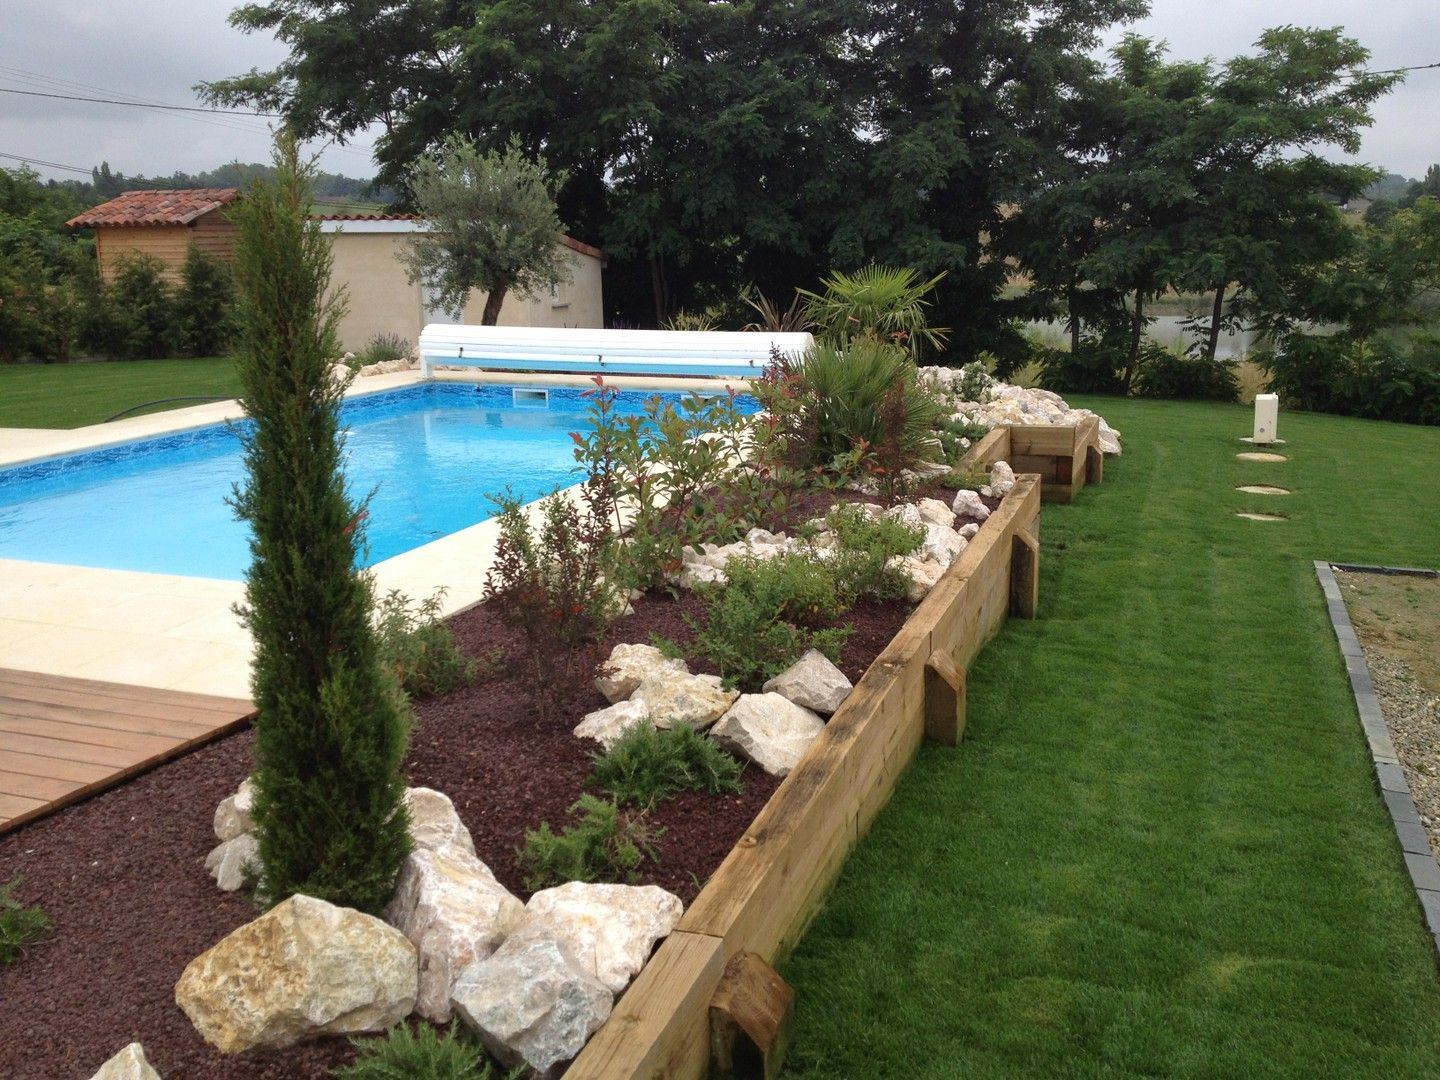 Am nagement tour de piscine piscines et bassins de for Amenagement jardin bordure